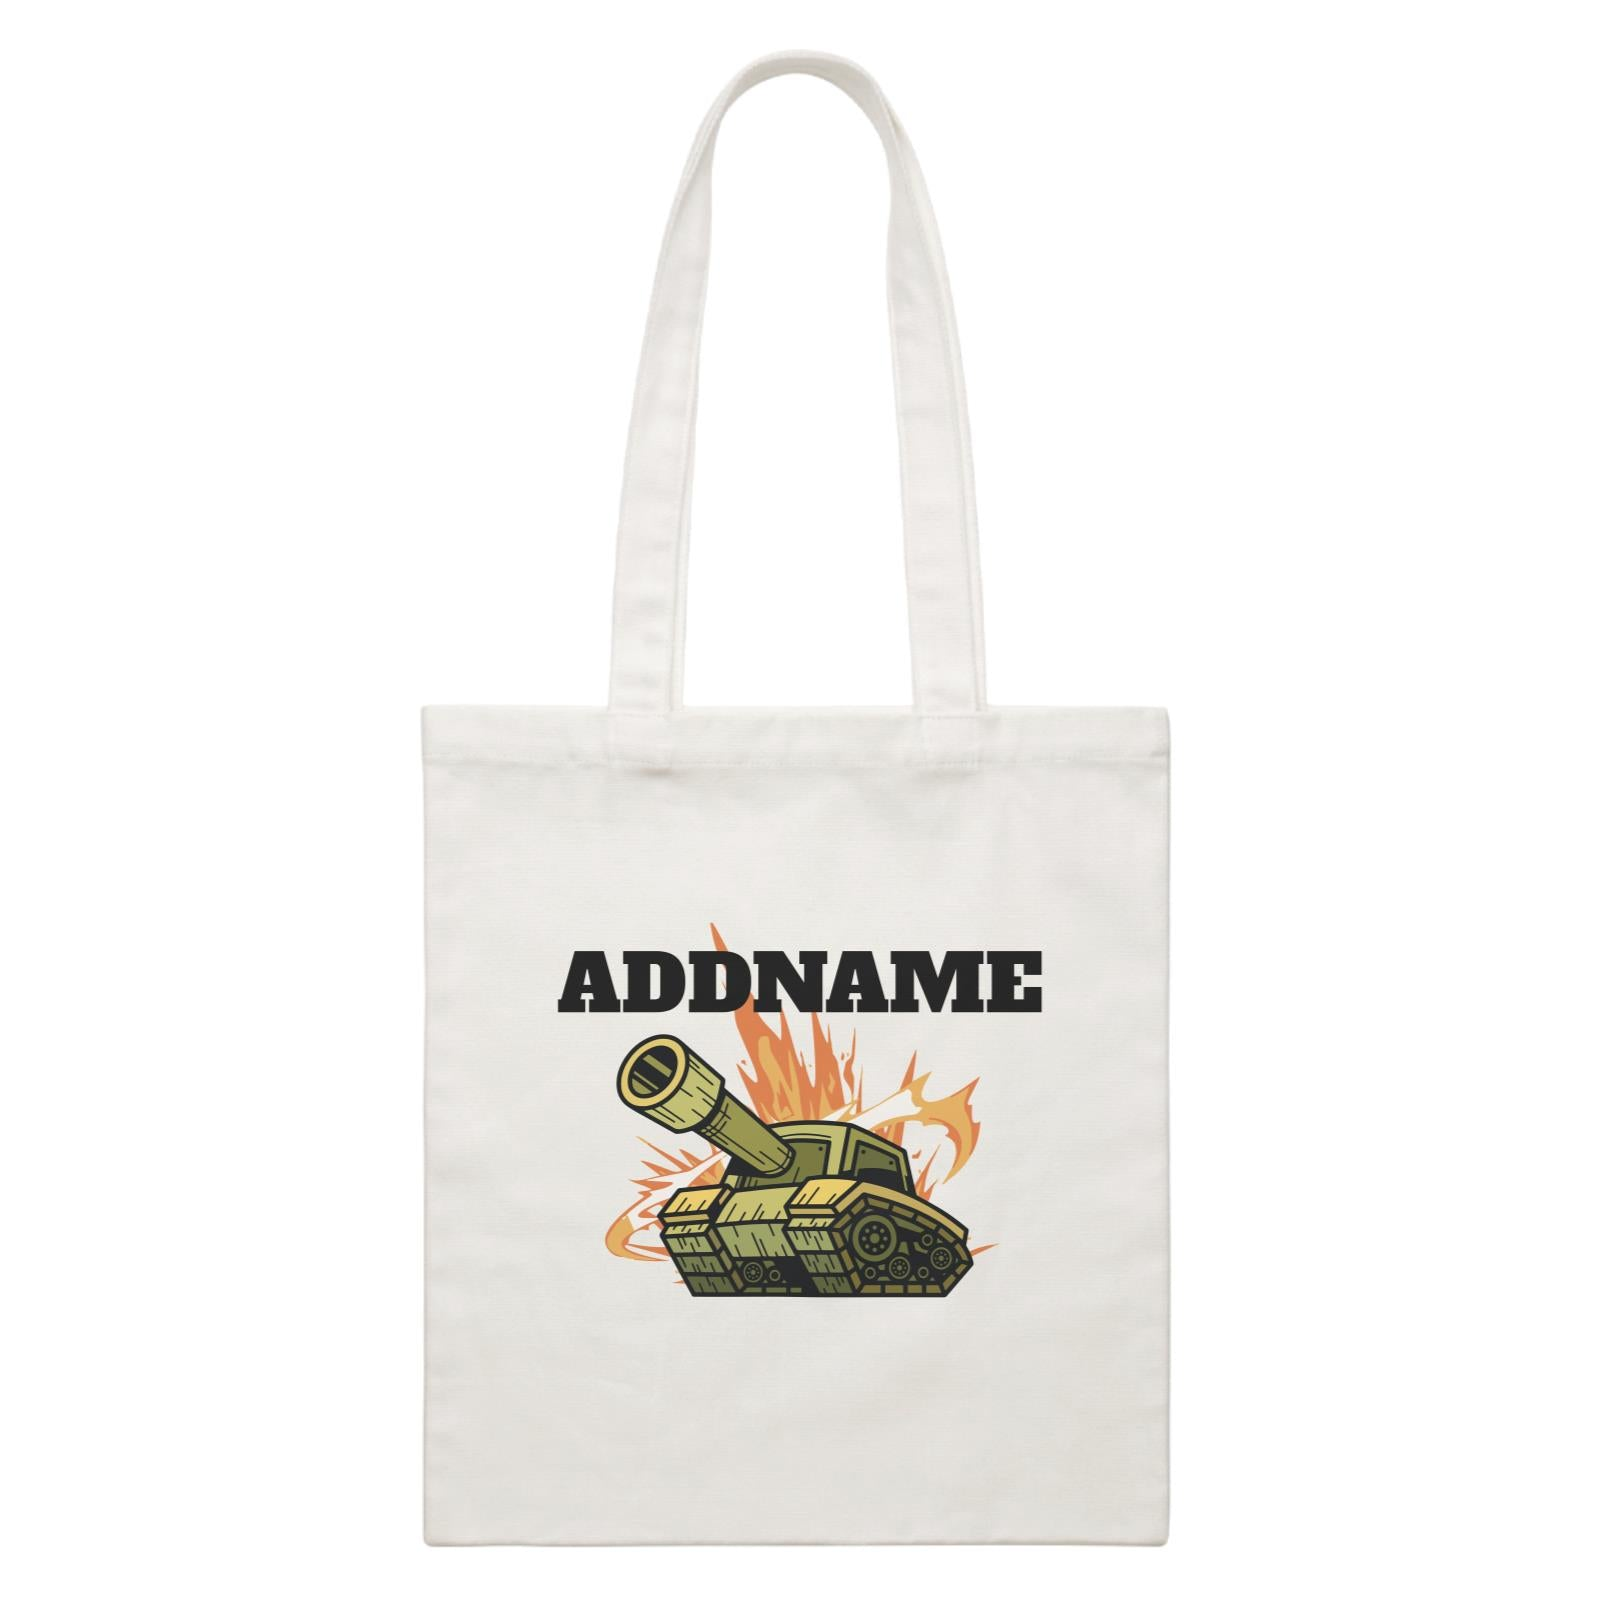 Birthday Battle Theme Tank Addname White Canvas Bag